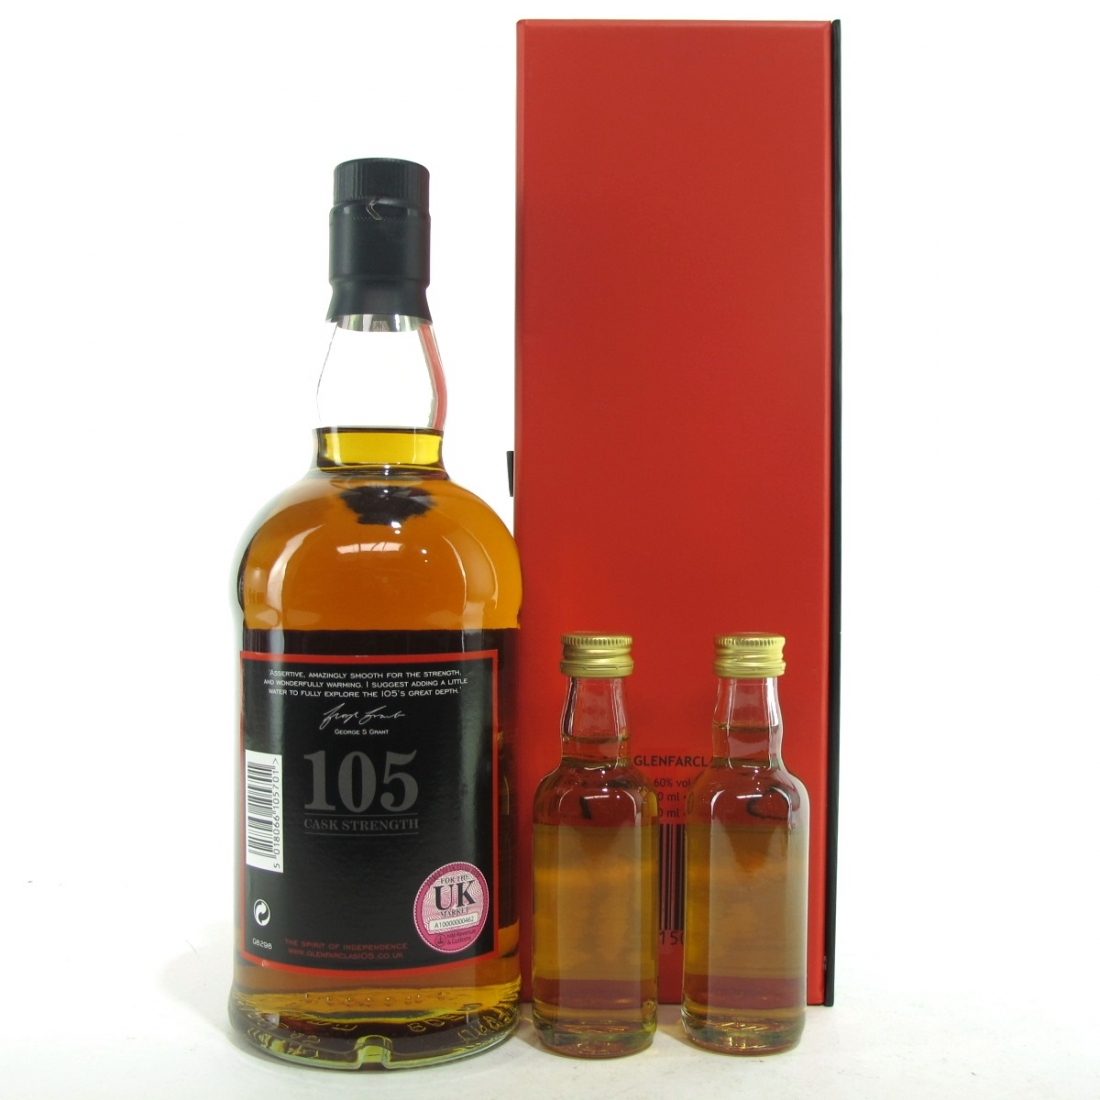 Glenfarclas 105 Cask Strength / with 15 and 21 Year Old Miniature 2 x 5cl